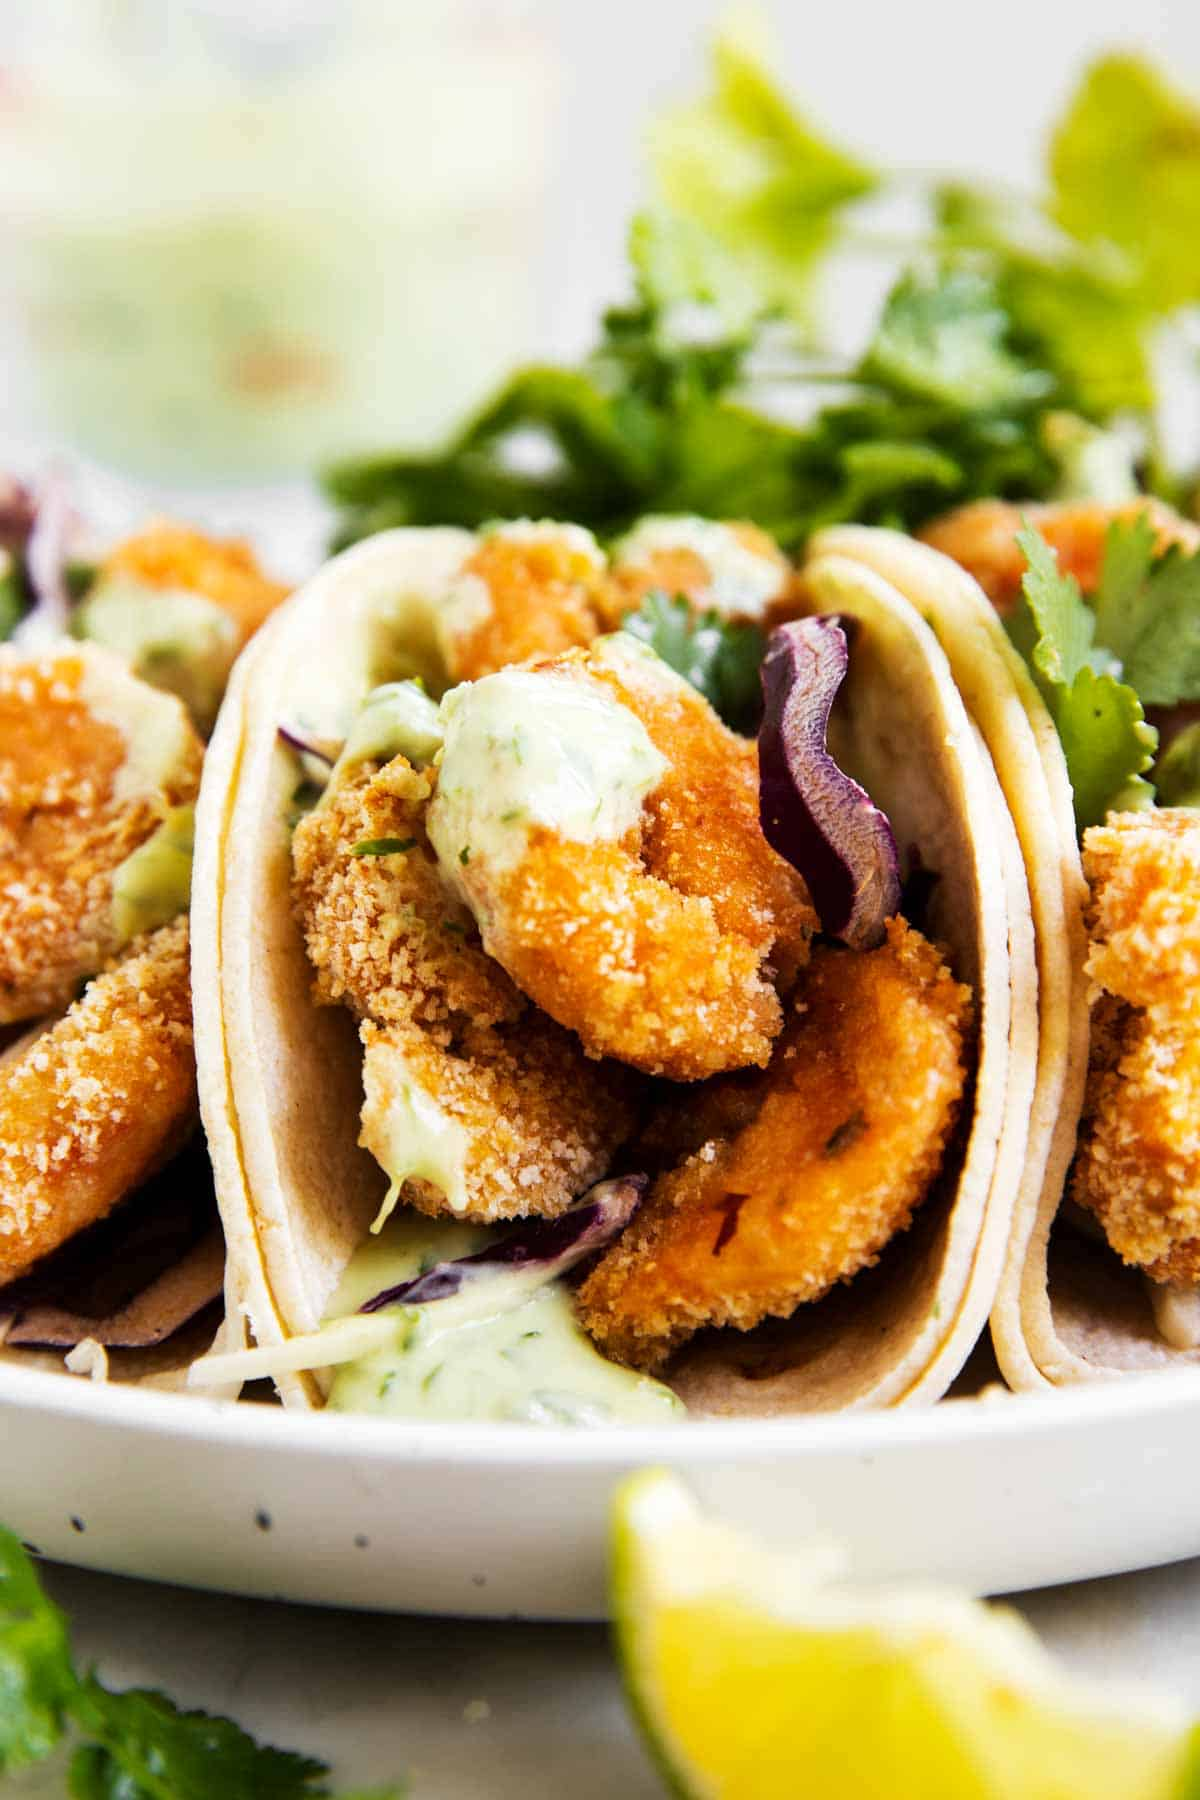 frontal view of shrimp taco on white plate